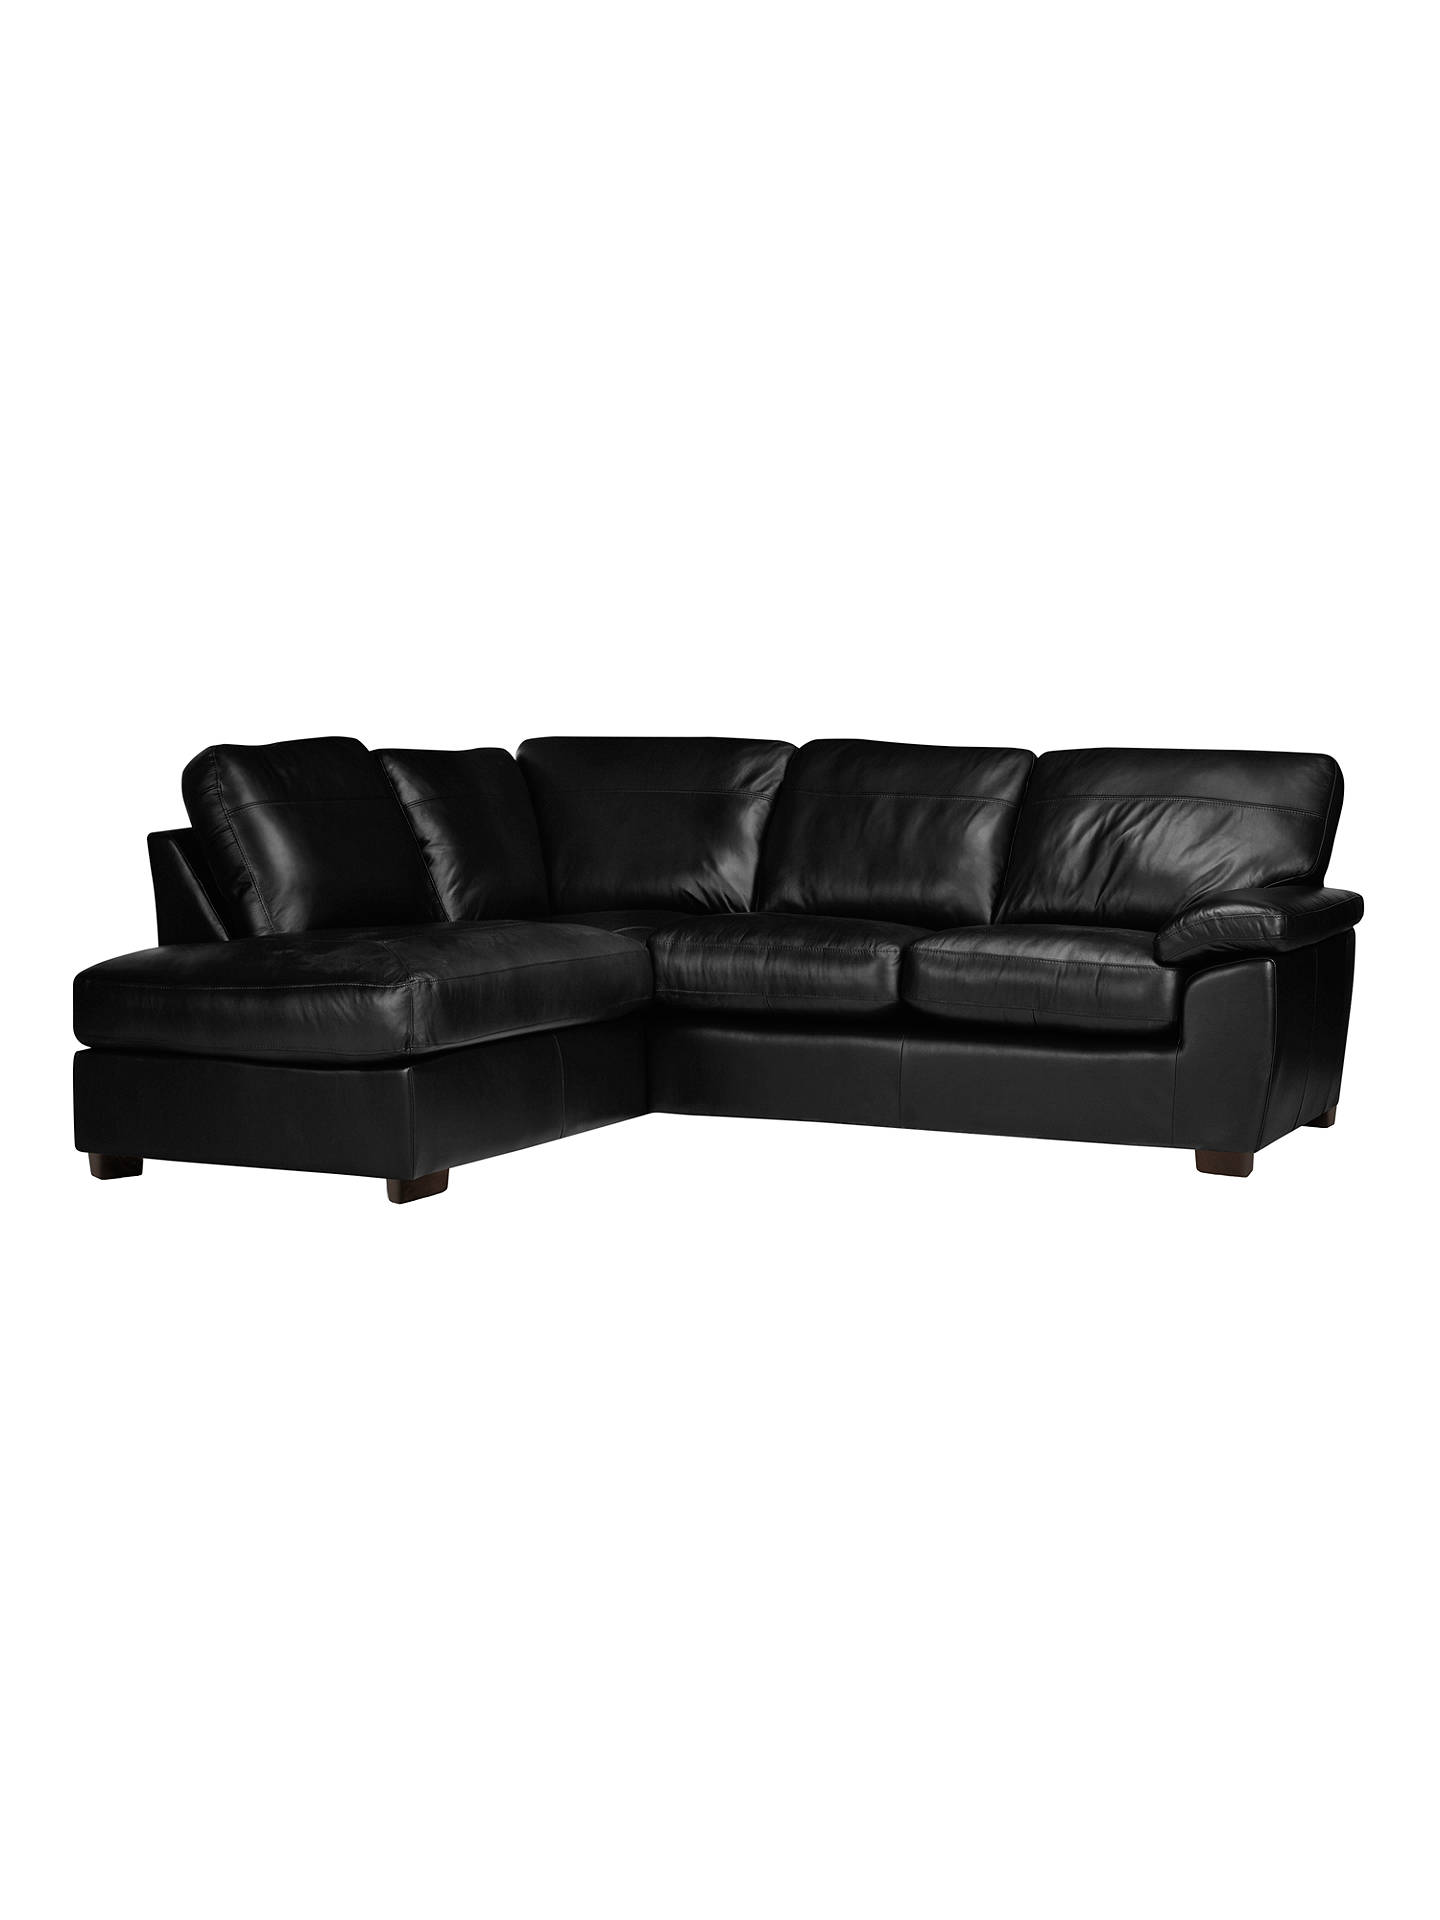 Buy John Lewis & Partners Camden Leather LHF Chaise Corner End Sofa, Dark Leg, Contempo Black Online at johnlewis.com